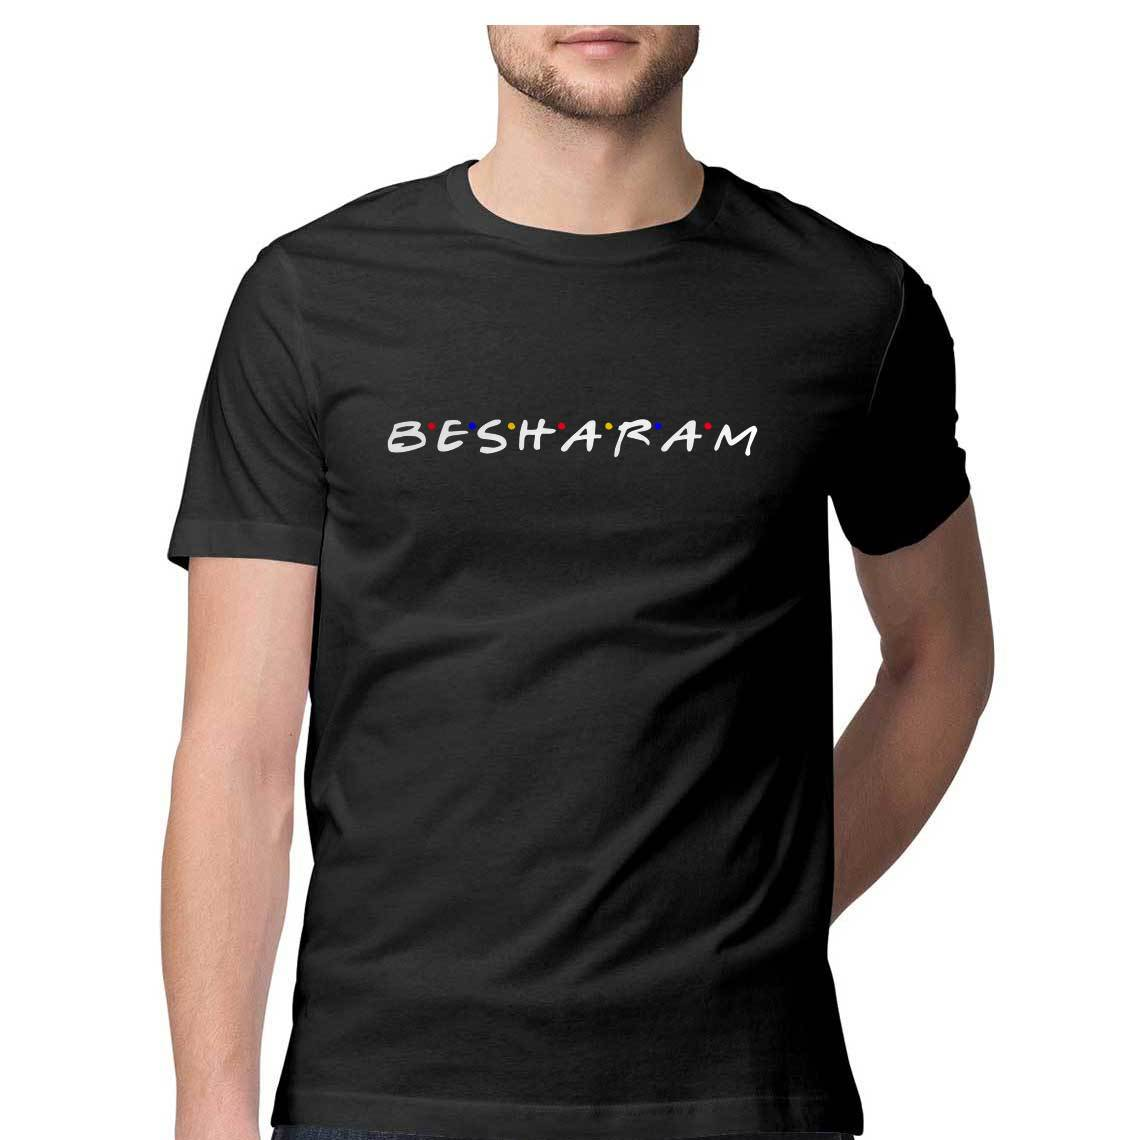 Besharam [As seen on TIKTOK] Rahul Rai's Favorite! Men's Tshirt